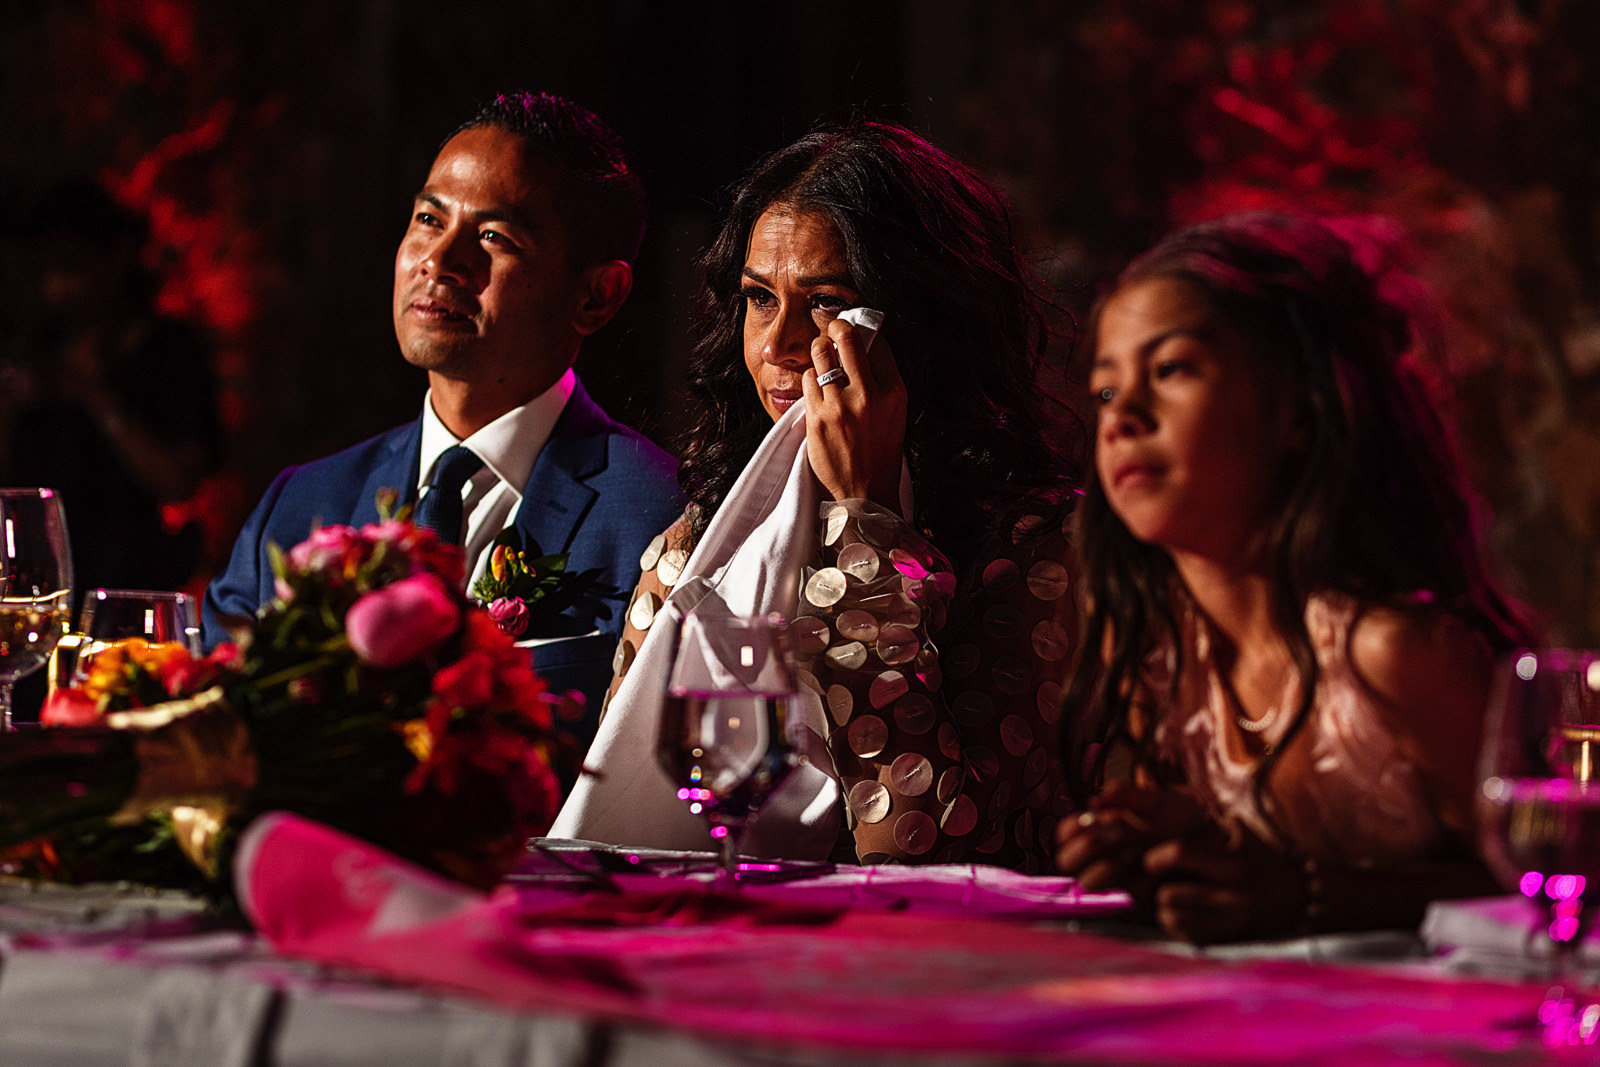 Bride crying next to her husband and daughter during a speech